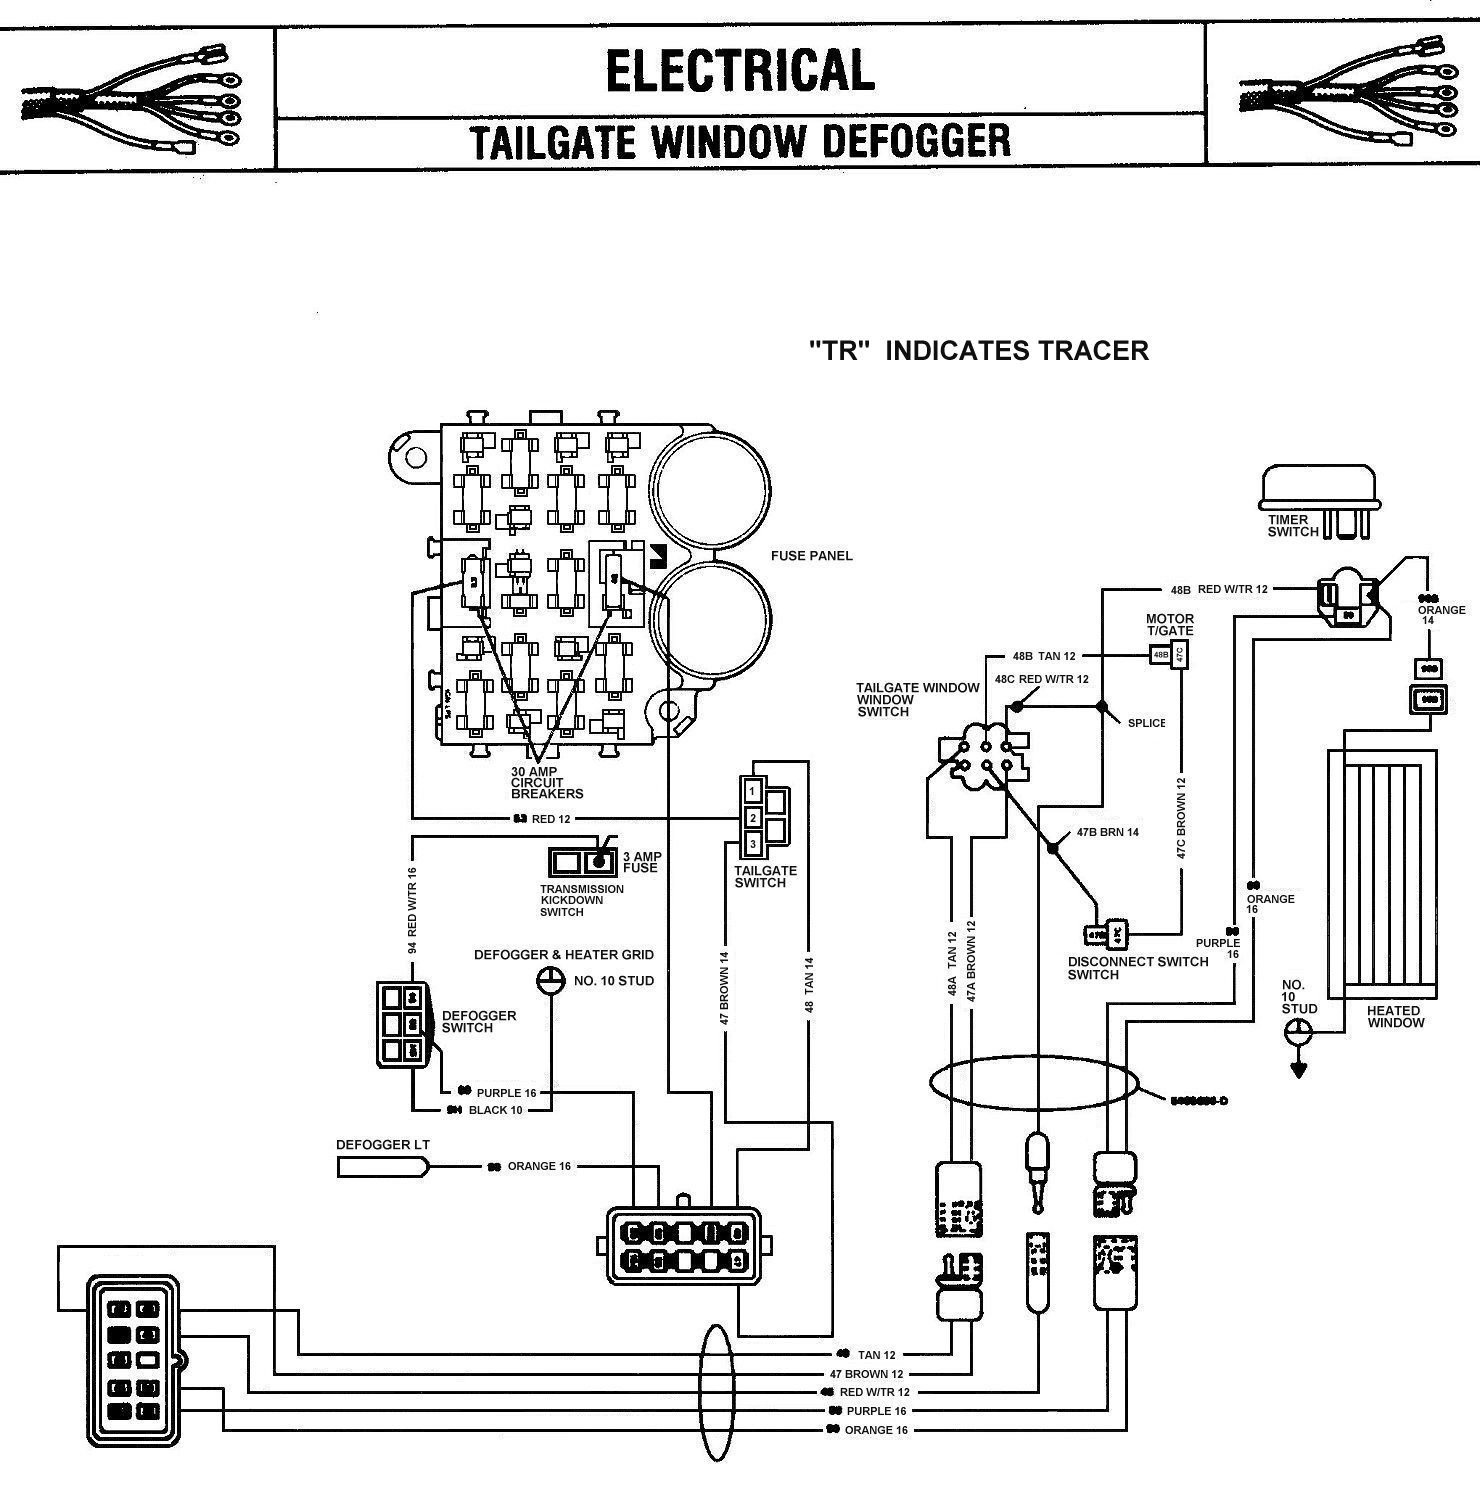 86 jeep cherokee fuse box wiring diagrams 1996 Jeep Grand Cherokee Wiring Diagram 1977 jeep cj7 wiring diagram 7 efa linda cosmetics de \\u20221977 cj5 fuse box wiring